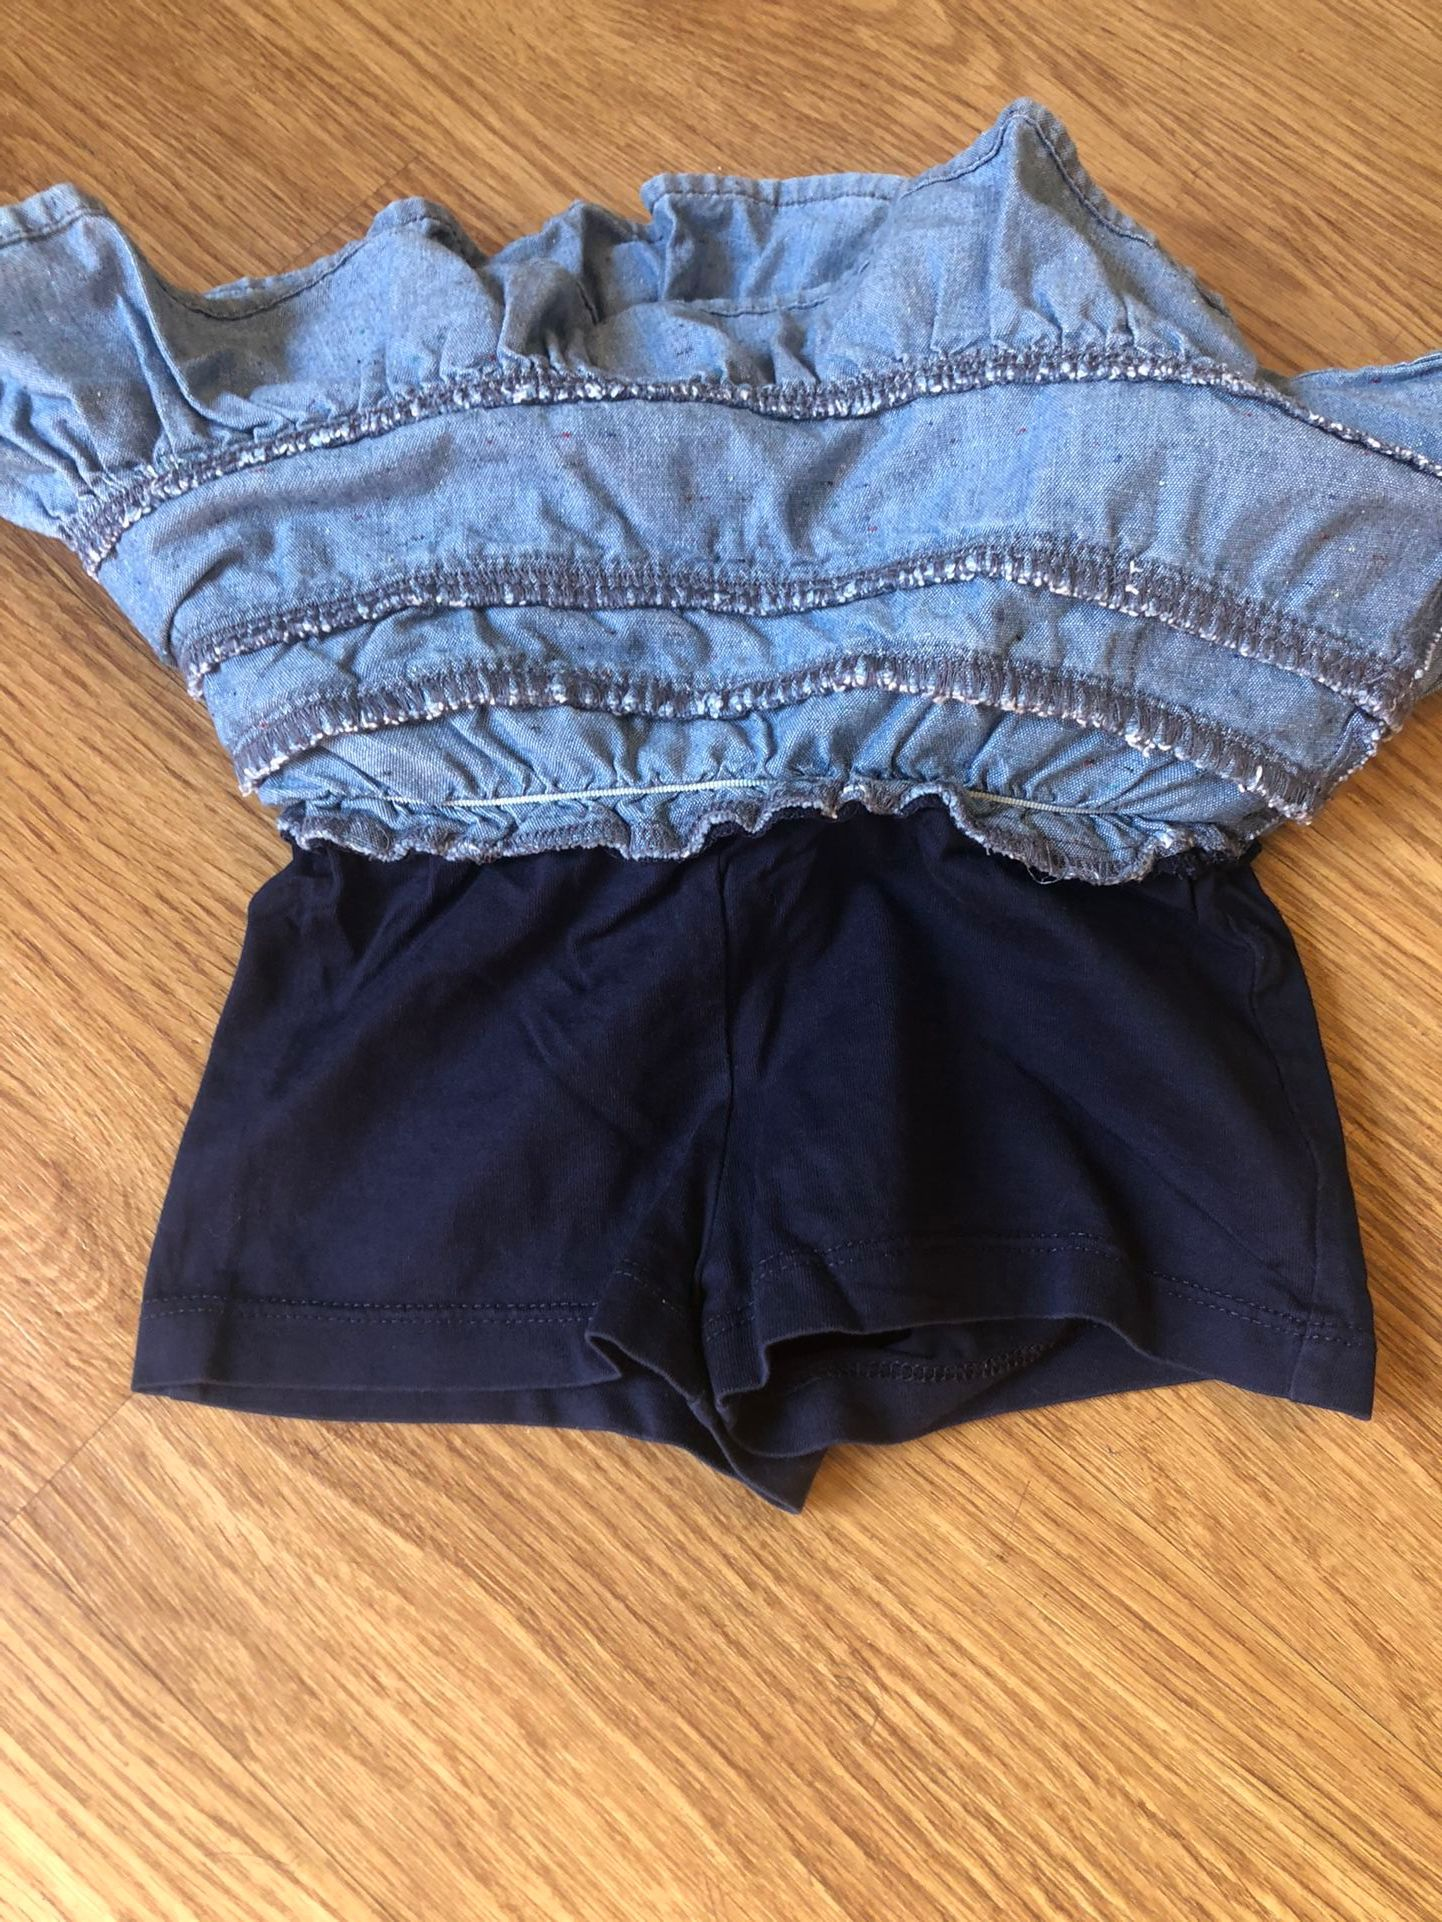 Hanna Andersson Denim Skirt With Shorts Toddler Girl Size 80 (2T)